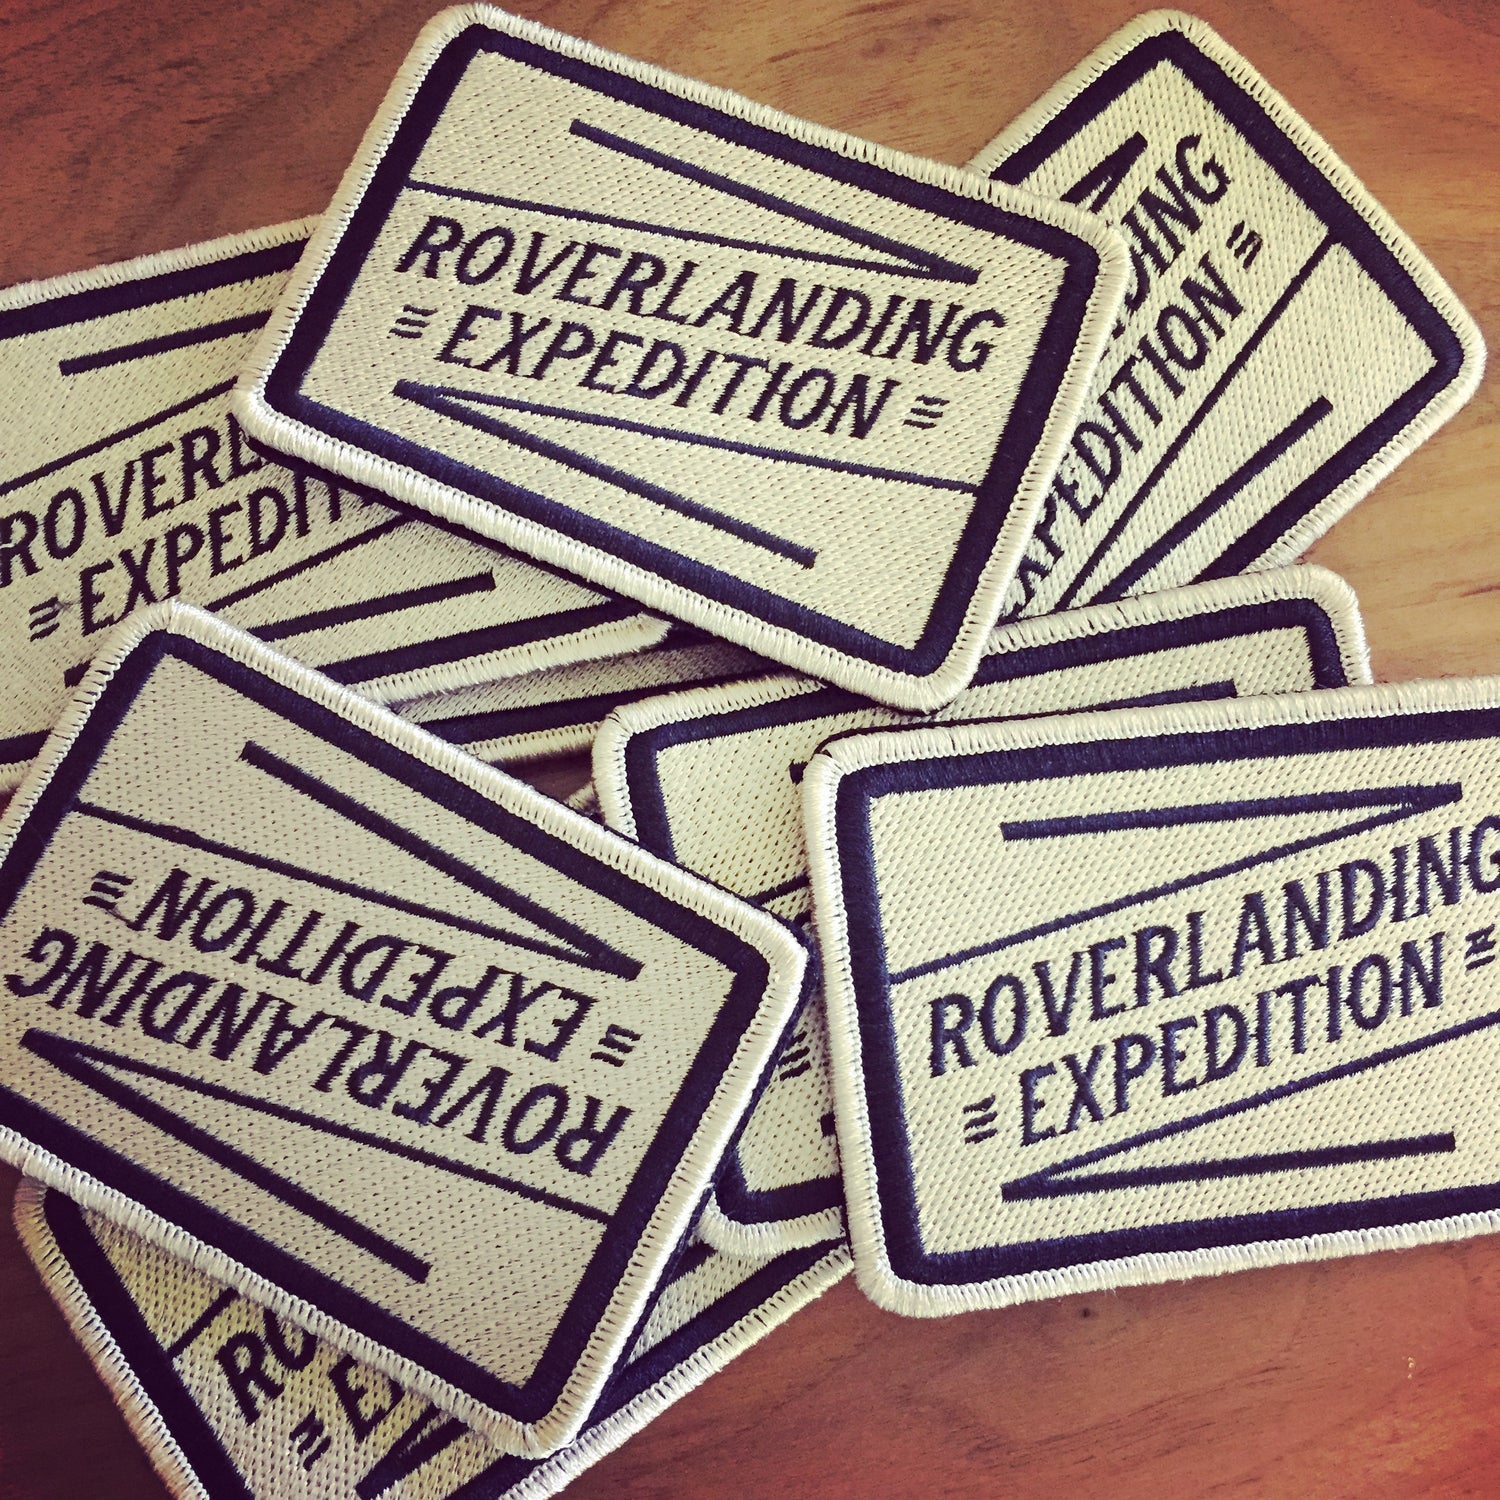 Image of ROVERLANDING EXPEDITION PATCH